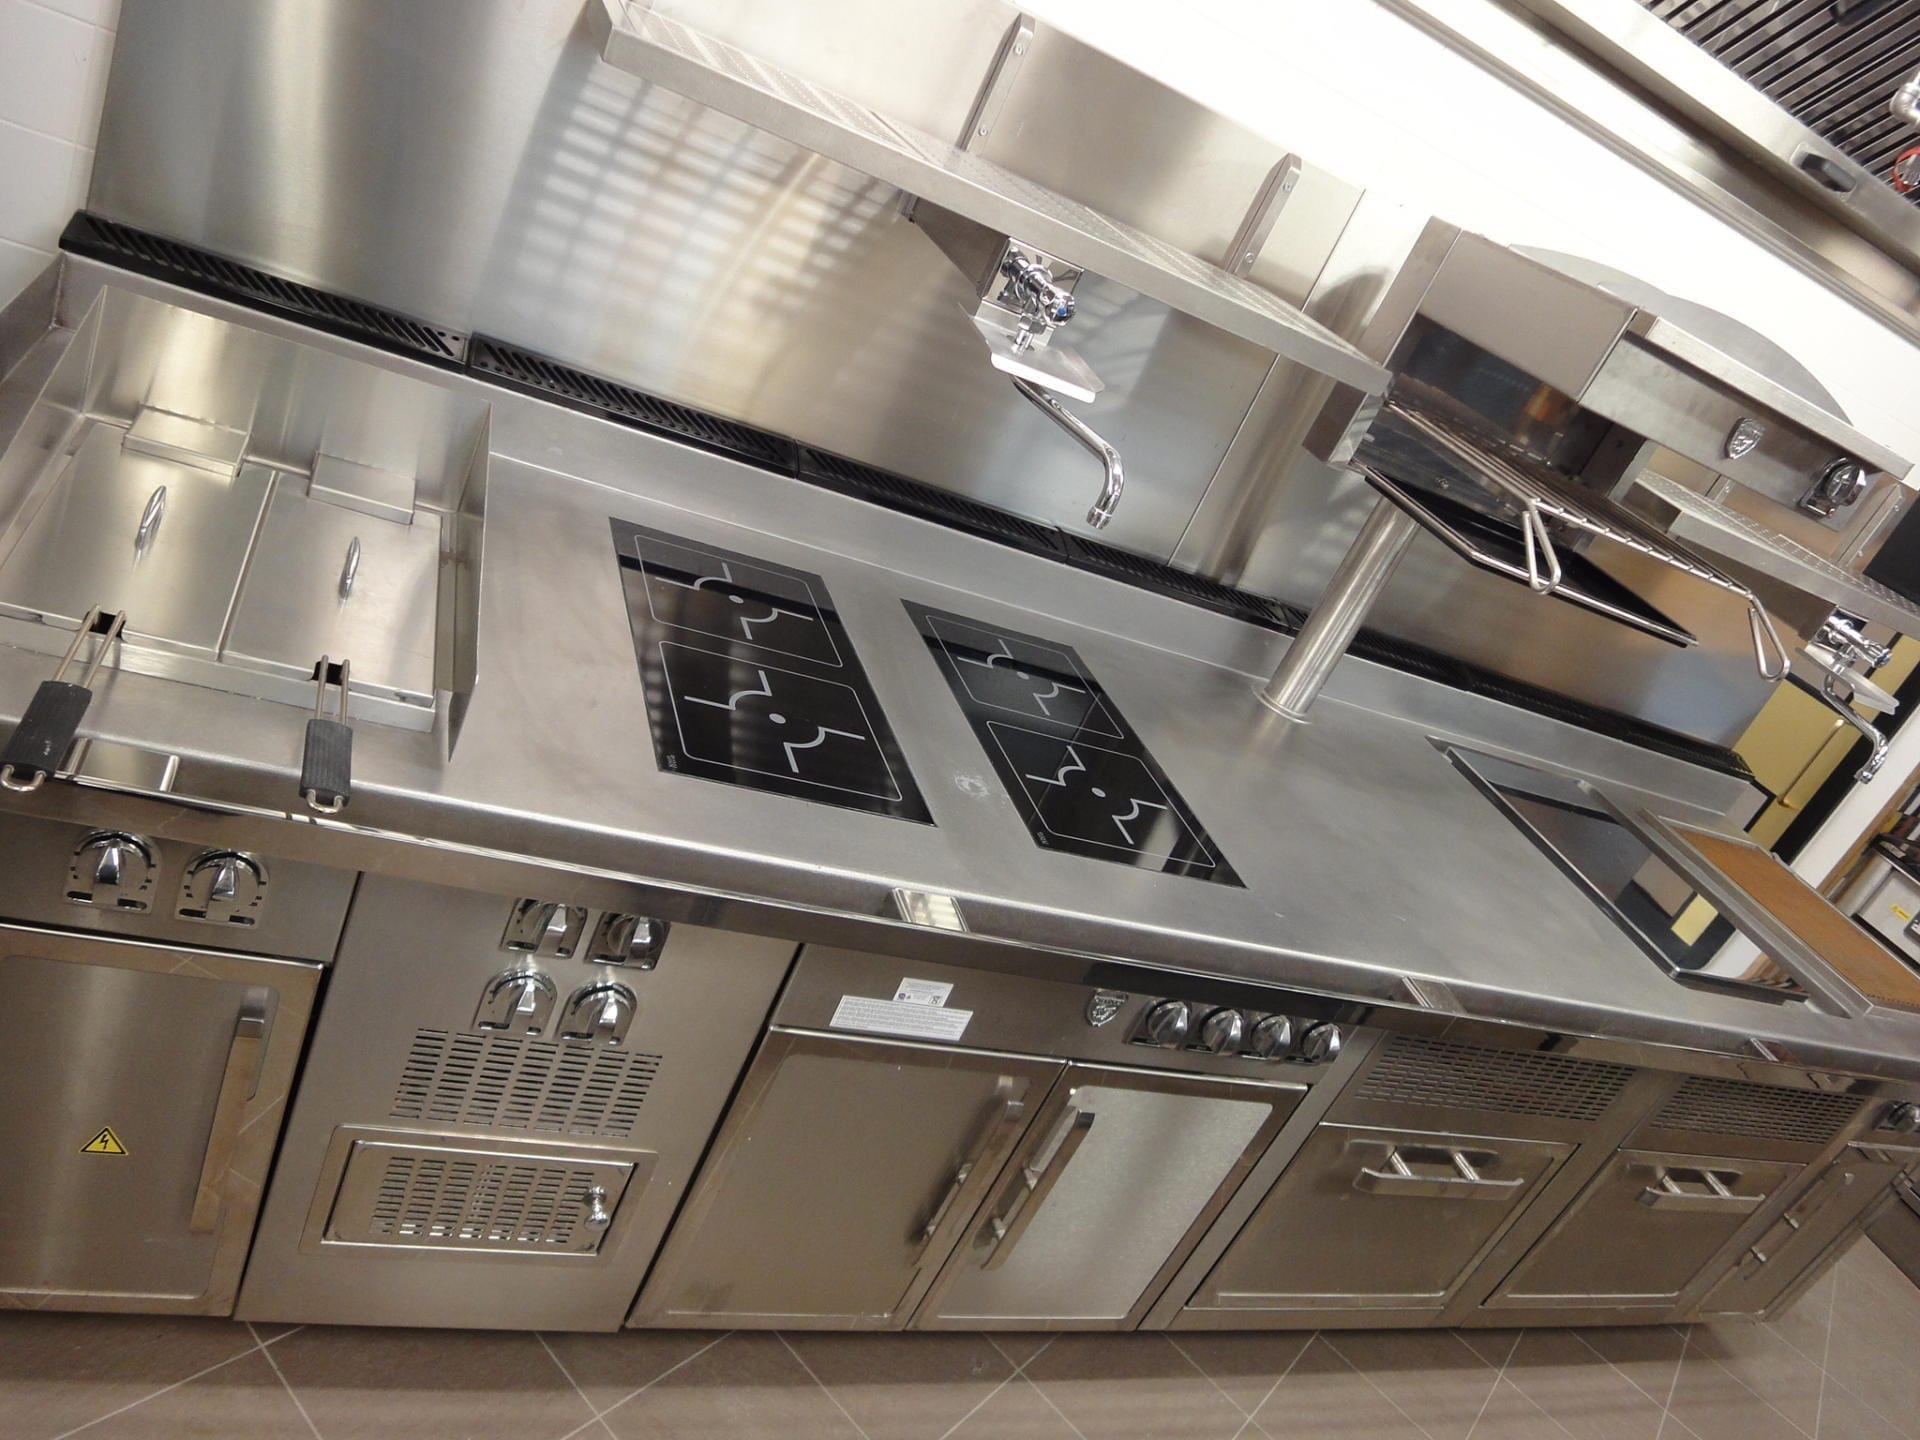 Hotel-Verta-Von-Essen-Battersea-Kitchen-Fabrication-Stainless-Steel-Commercial-spacecatering_8